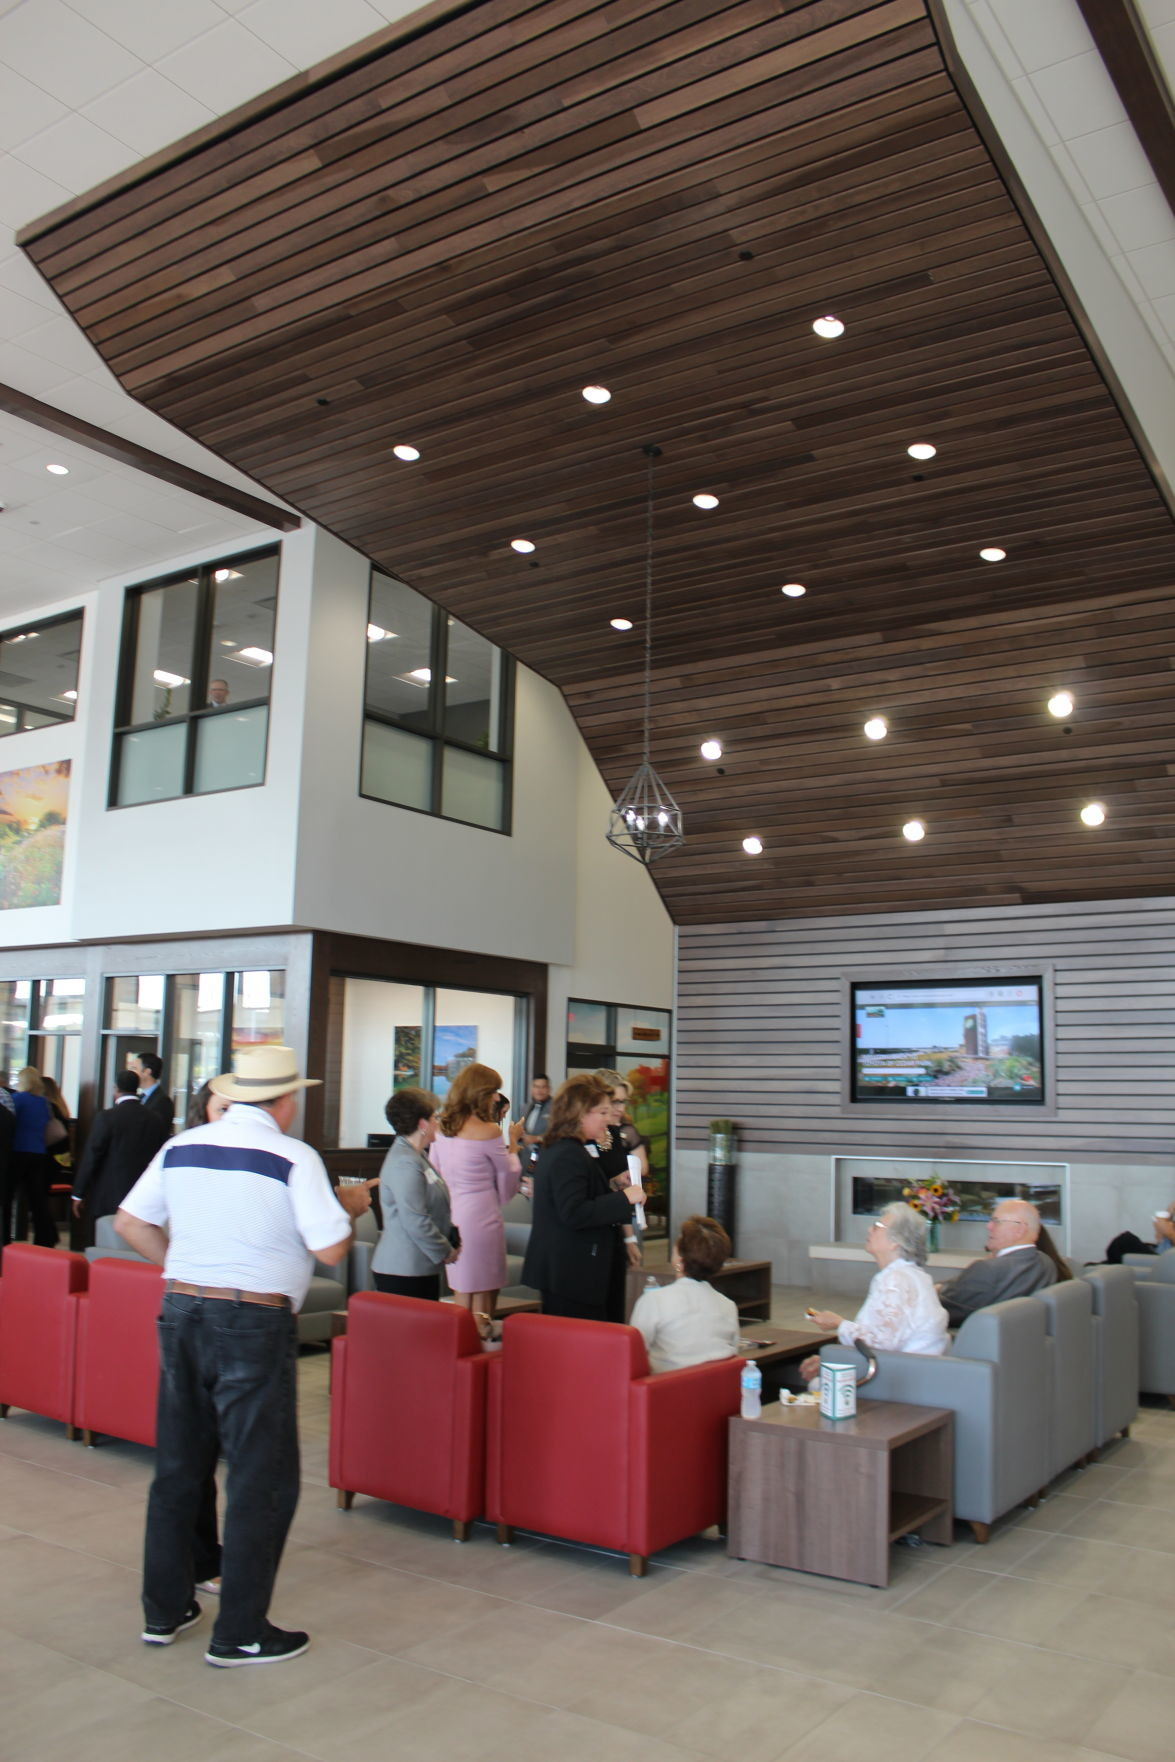 The Cornerstone Of Toyota Dealership S Design Is Rulan A Large Wood Paneled